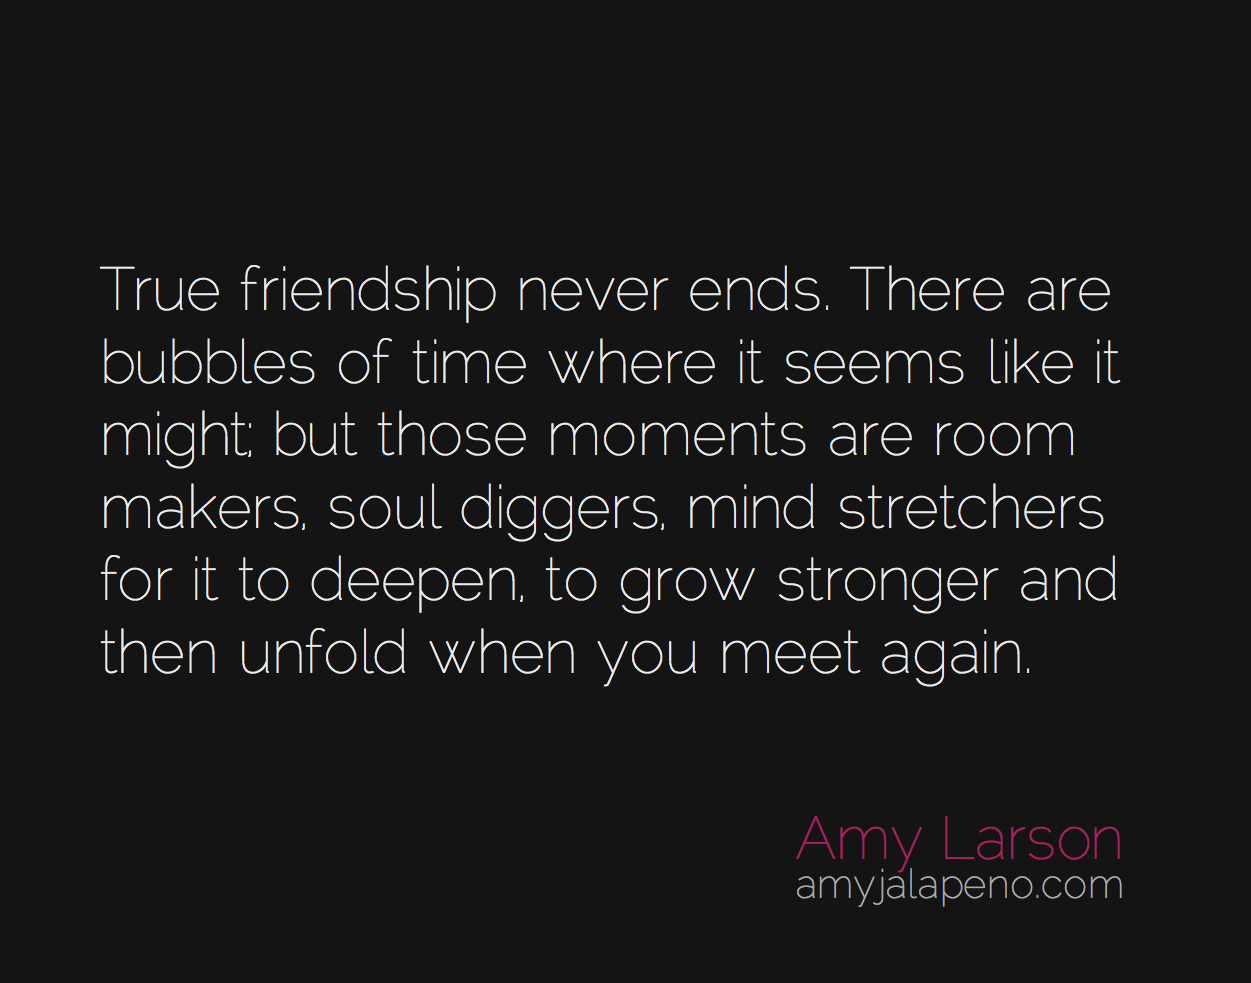 Quotes About True Friendship Do True Friendships Really End Daily Hot Quote  Amyjalapeño